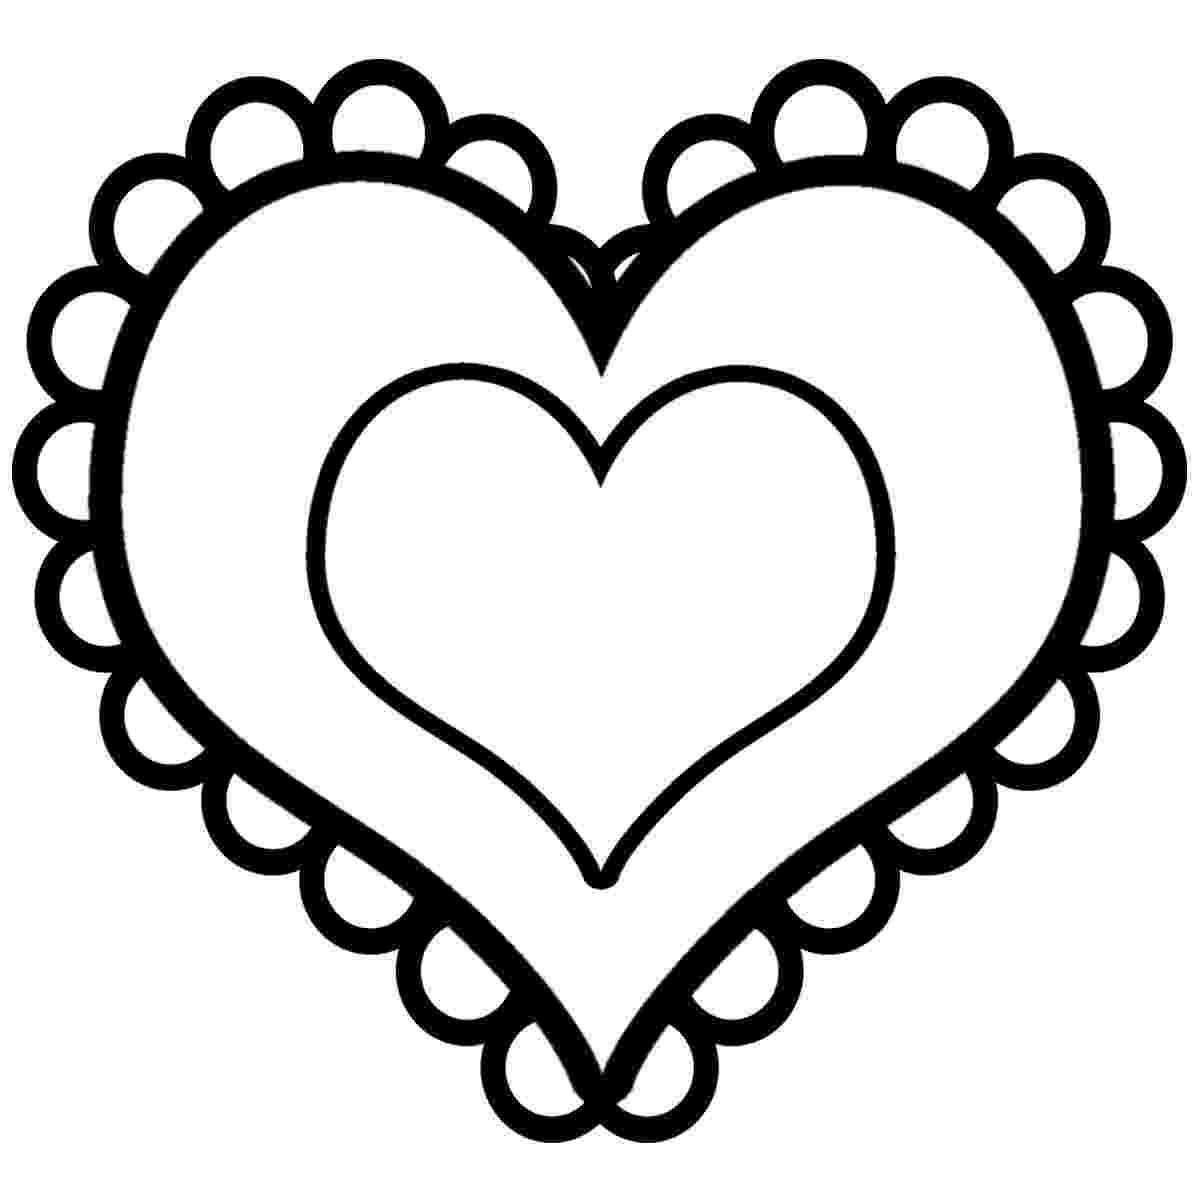 coloring book pictures of hearts free printable heart coloring pages for kids cool2bkids pictures book hearts of coloring